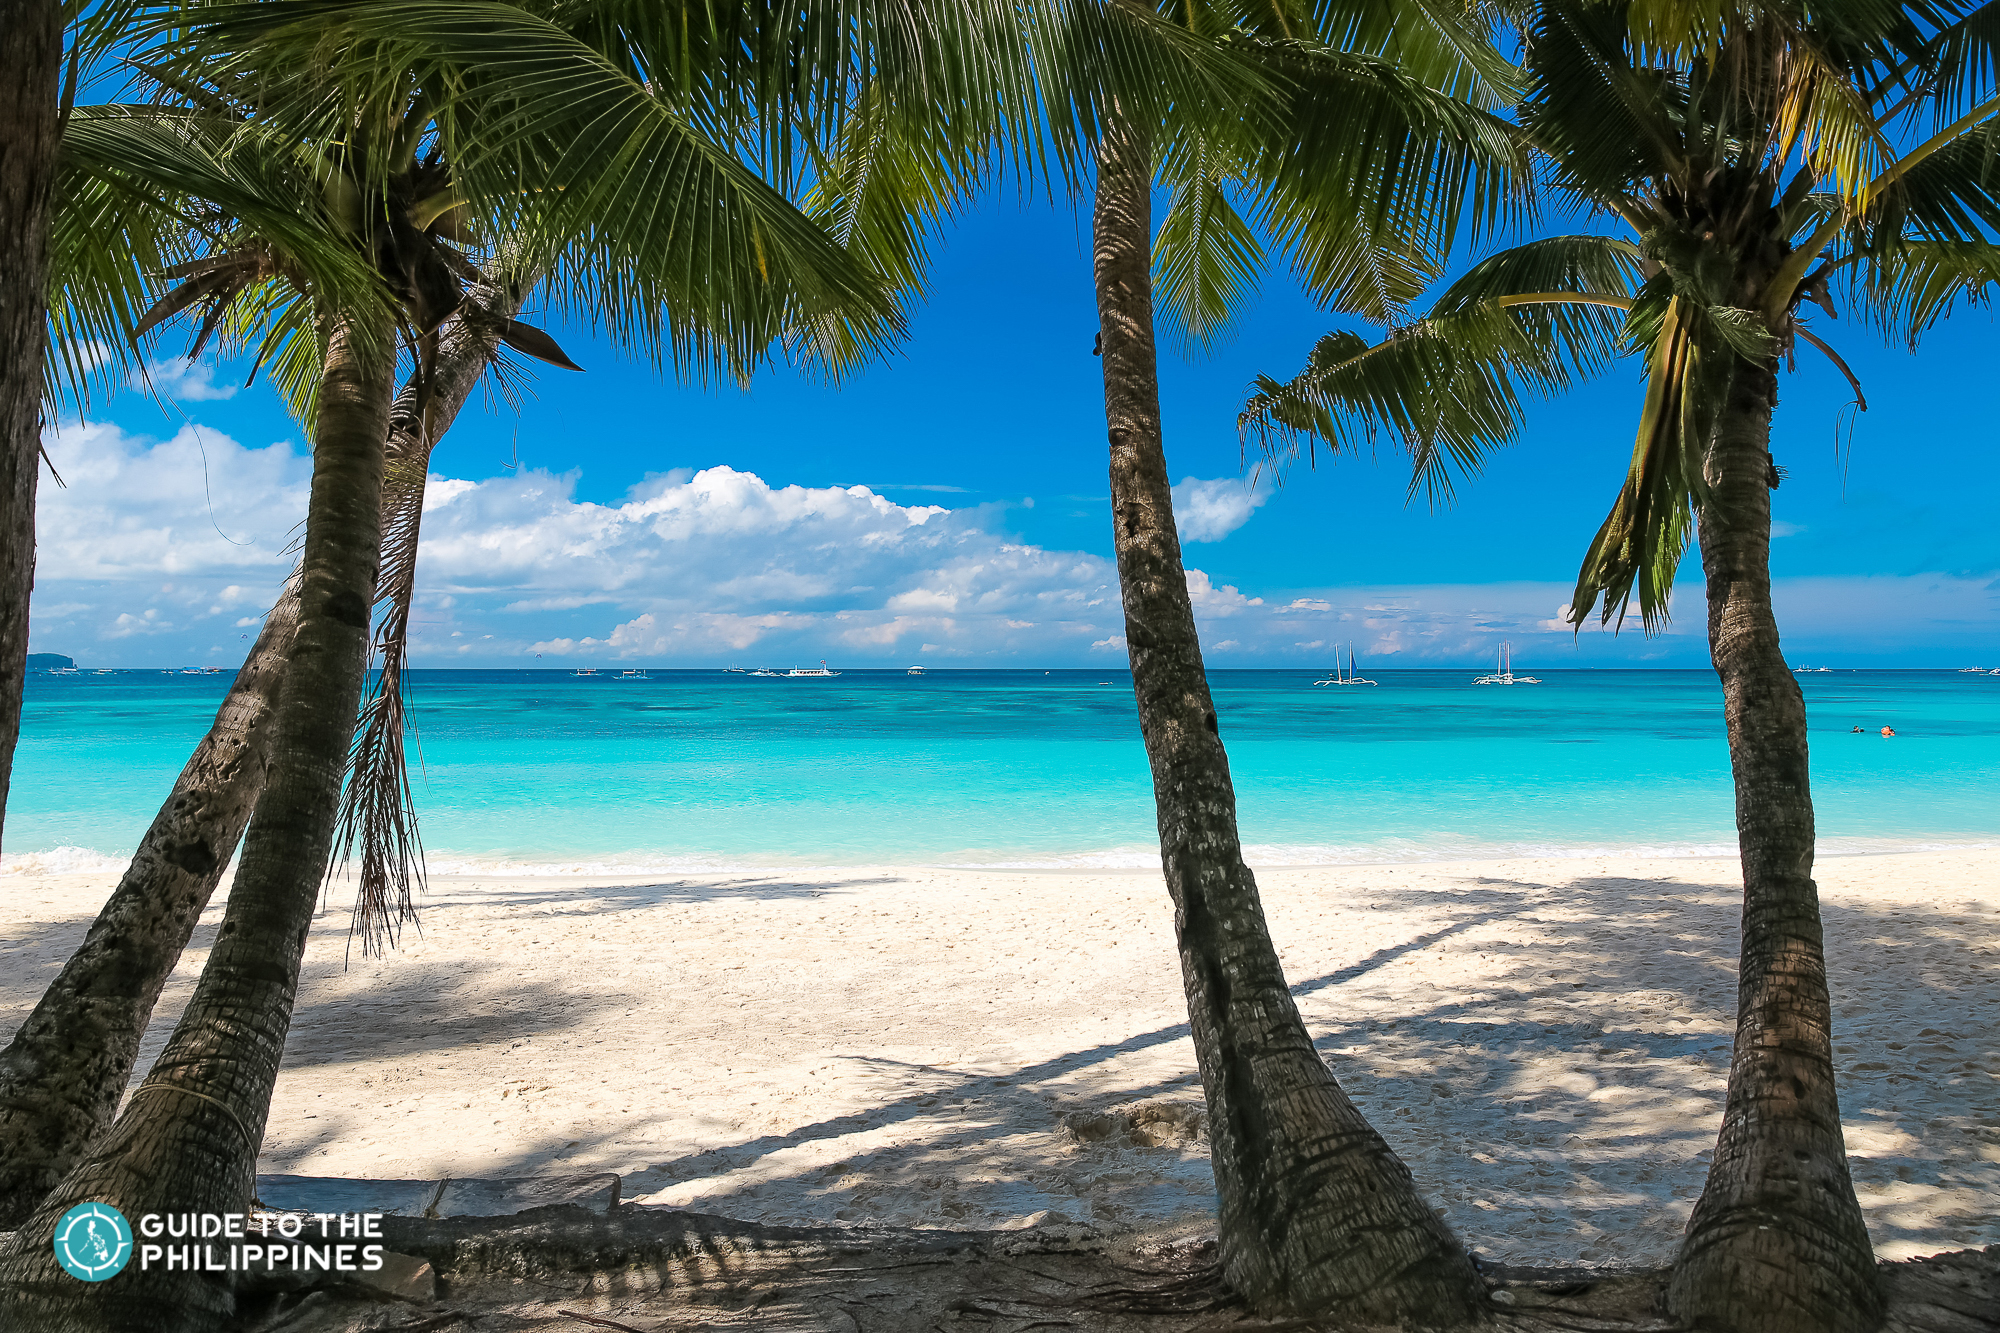 Package Deal to Boracay with Discovery Shores Resort & Philippine Airlines 3 Days & 2 Nights - day 1